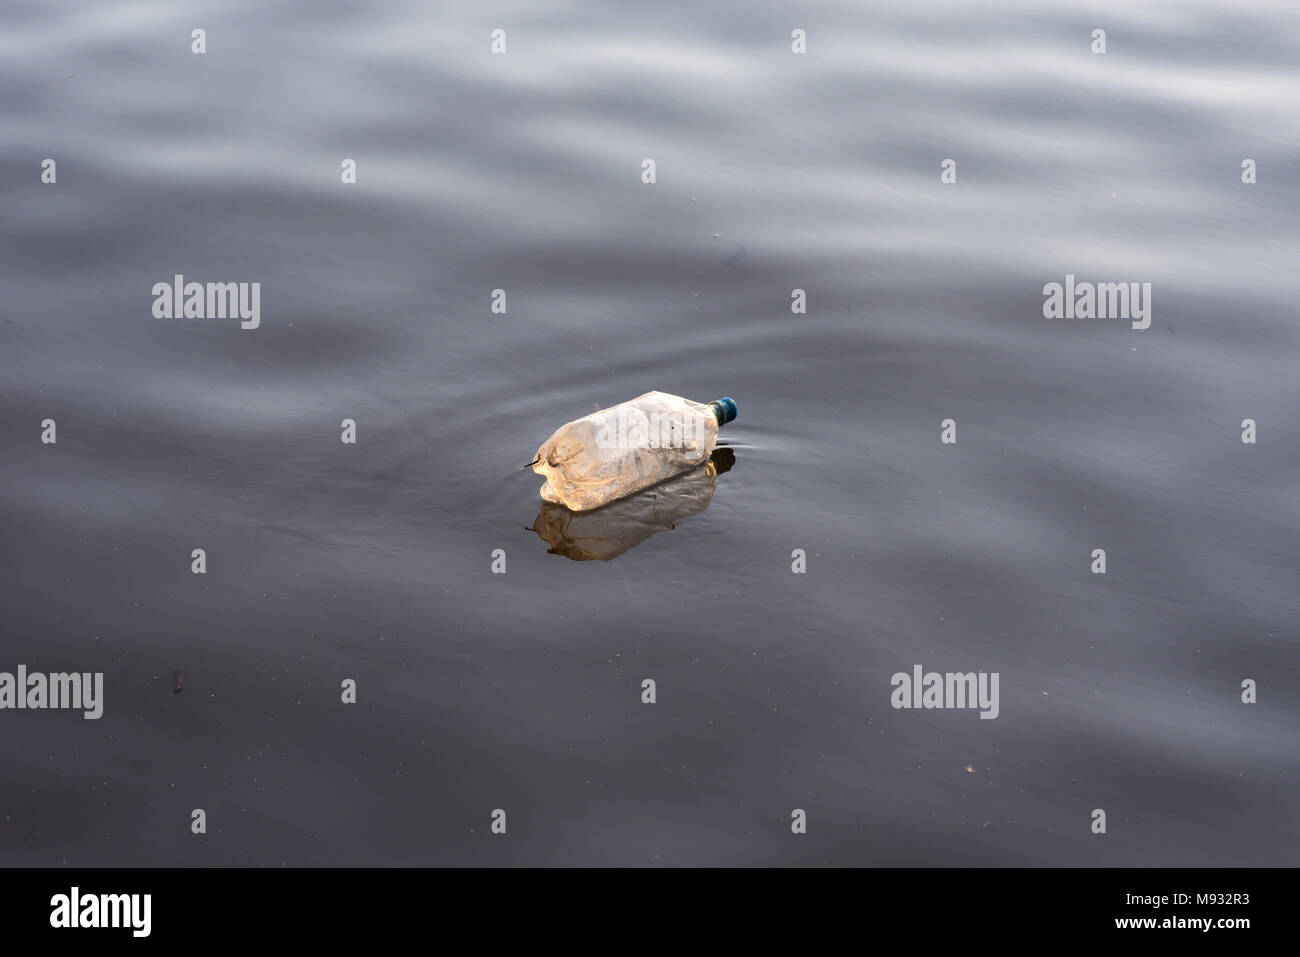 closeup of a single plastic bottle litter floating in body of water - Stock Image